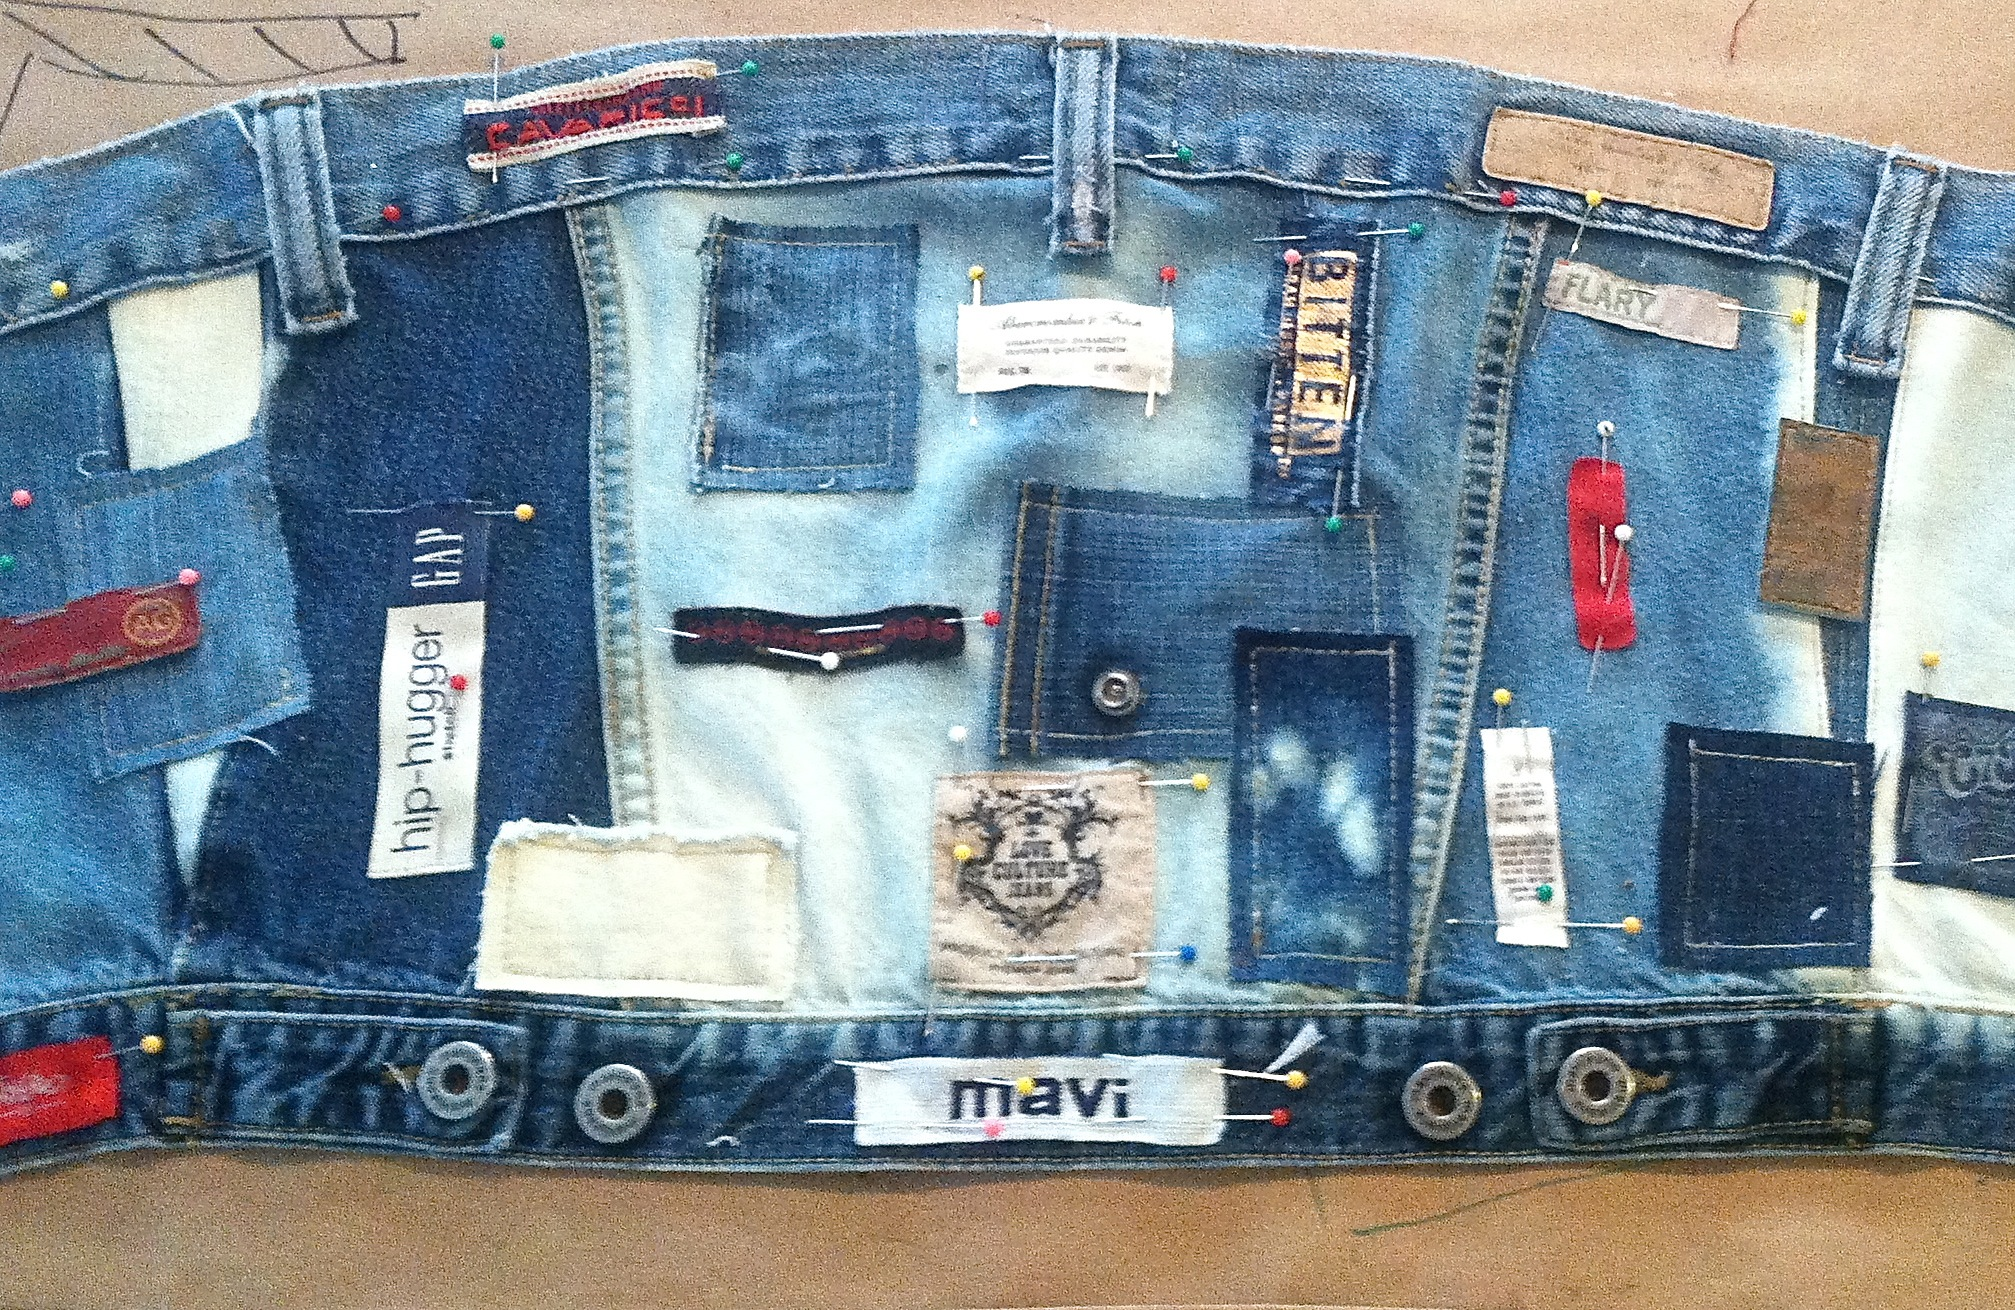 This started out as the back of a jean jacket, and I altered the shape, bleached sections, but left the bottom band intact.  The top band is a waistband from a pair of jeans, and I used the beltloops also.  As I ripped apart jeans for the skirt section, I fell in love with all the labels, so decided to sew them all over the bustier.